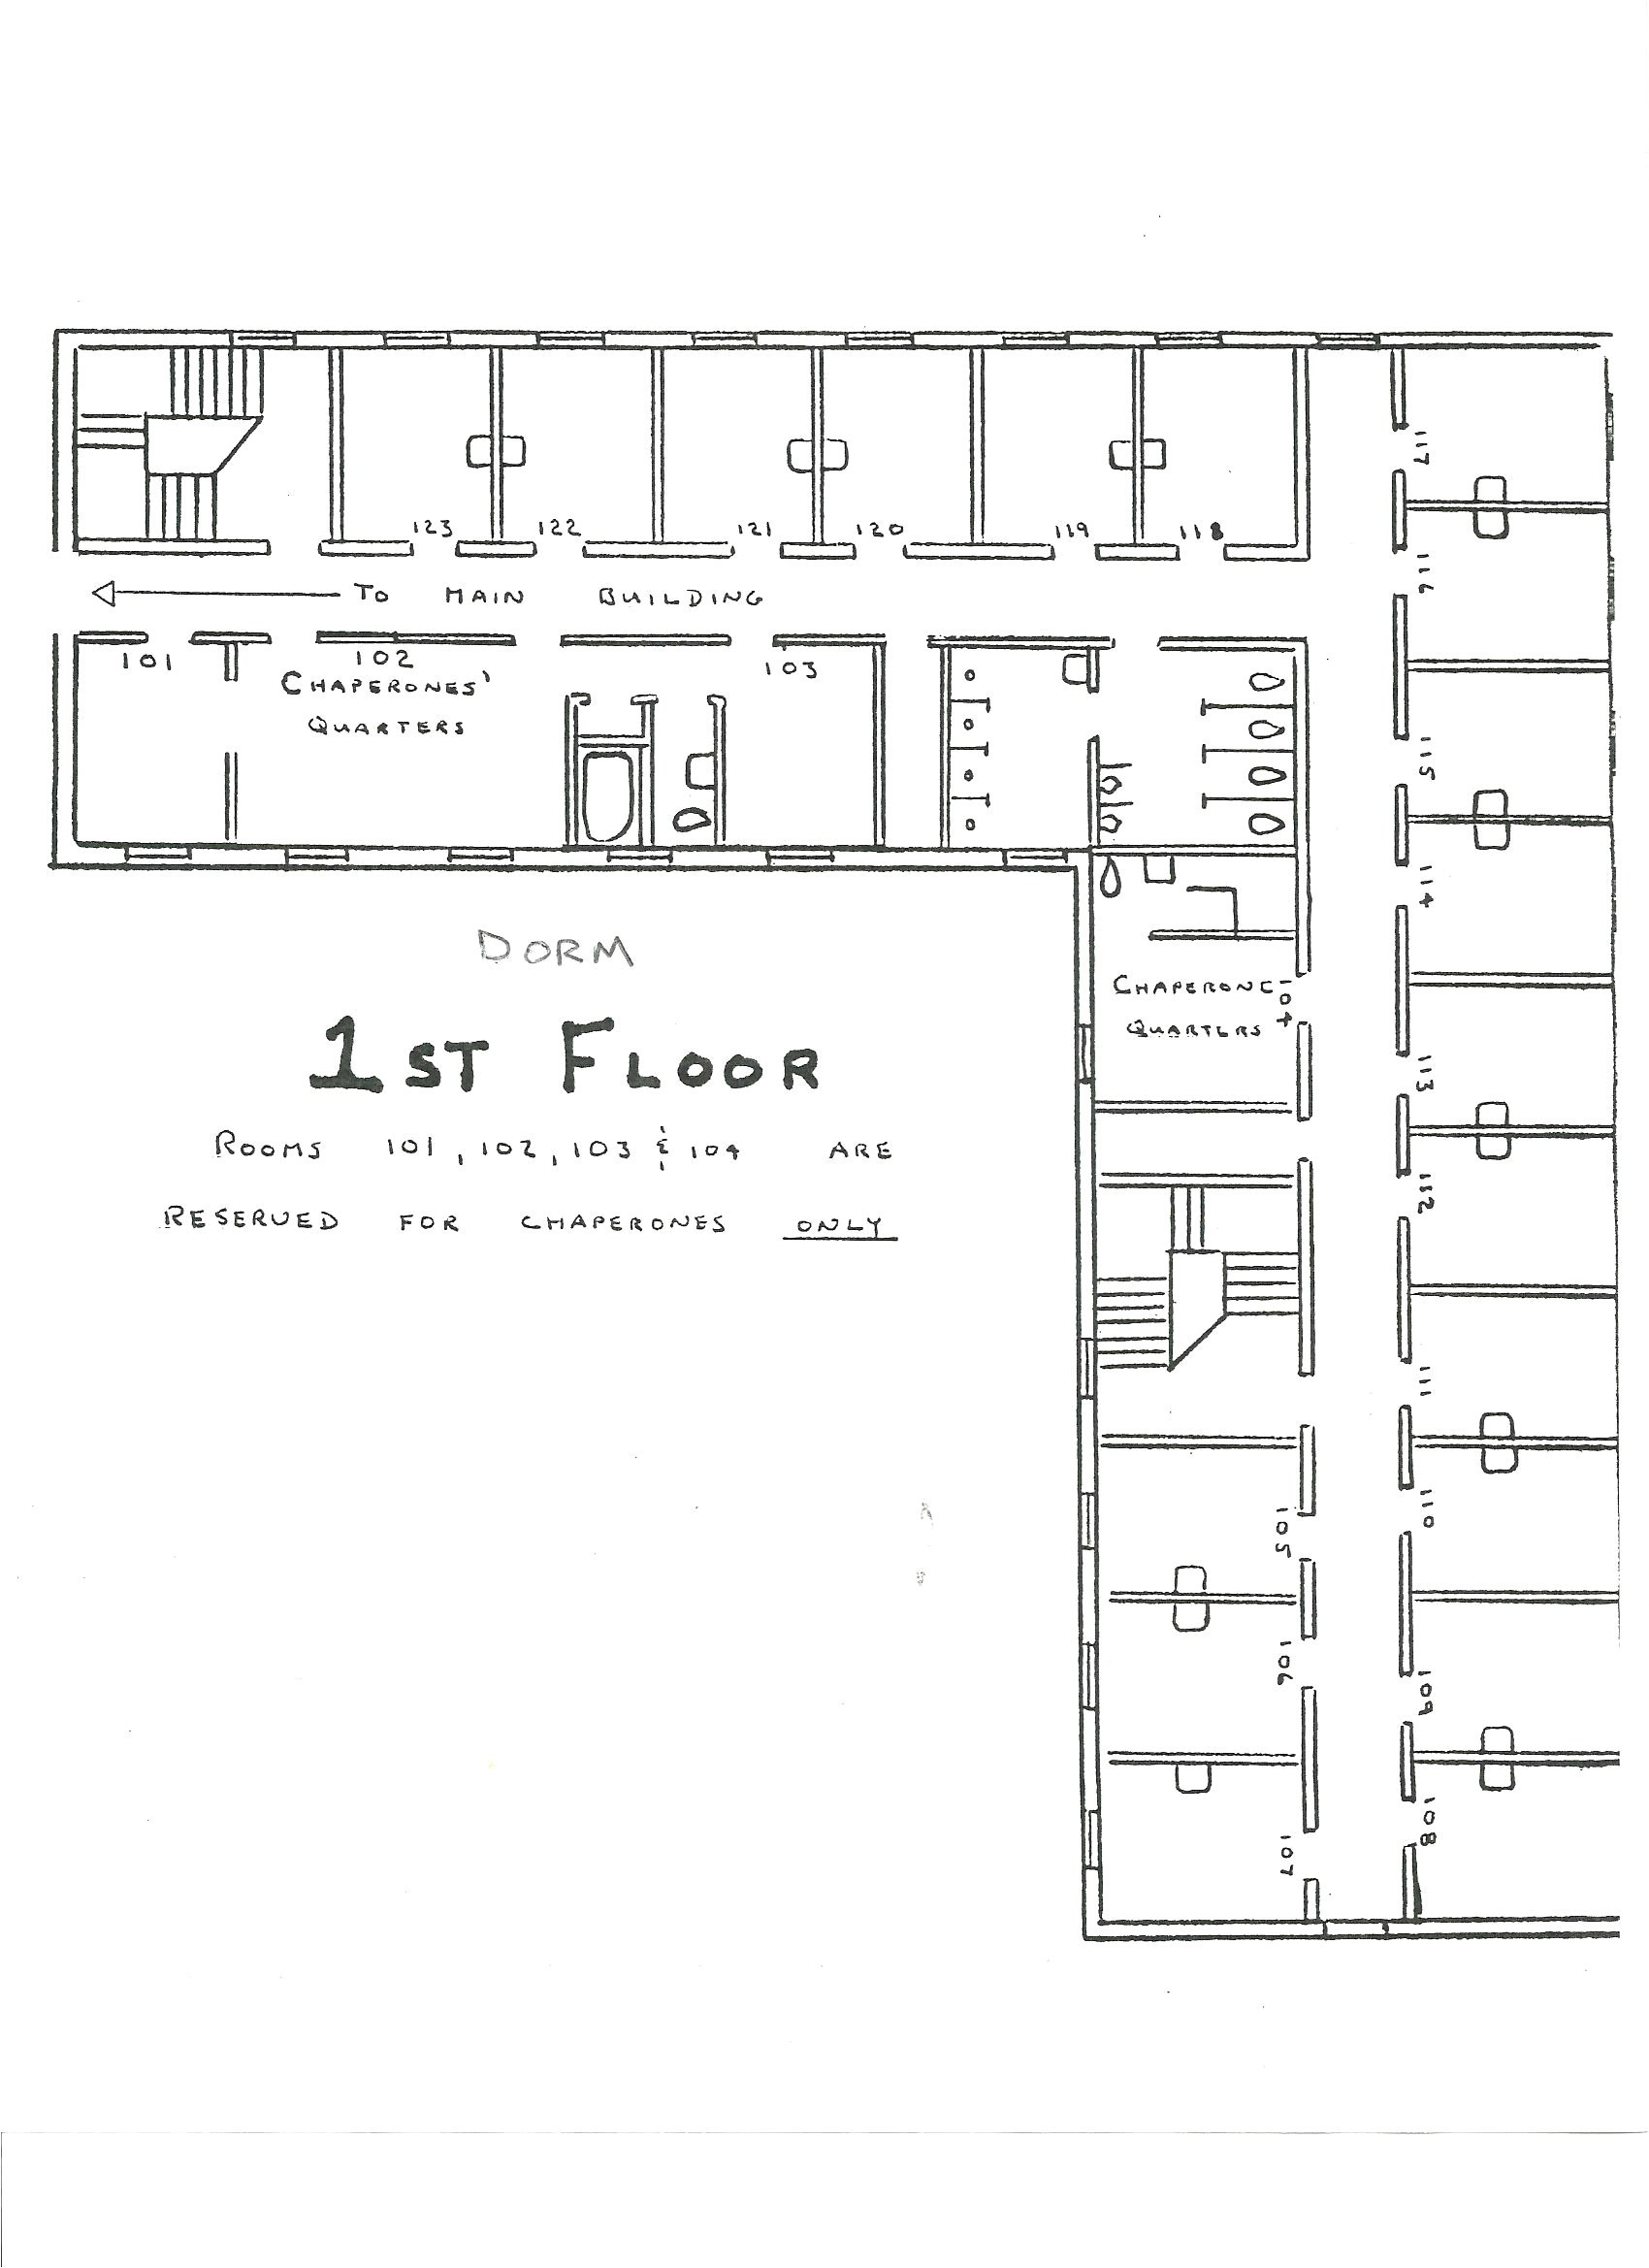 funeral home floor plan elegant funeral home floor plans unique 17 luxury 4 bedroom 2 story floor